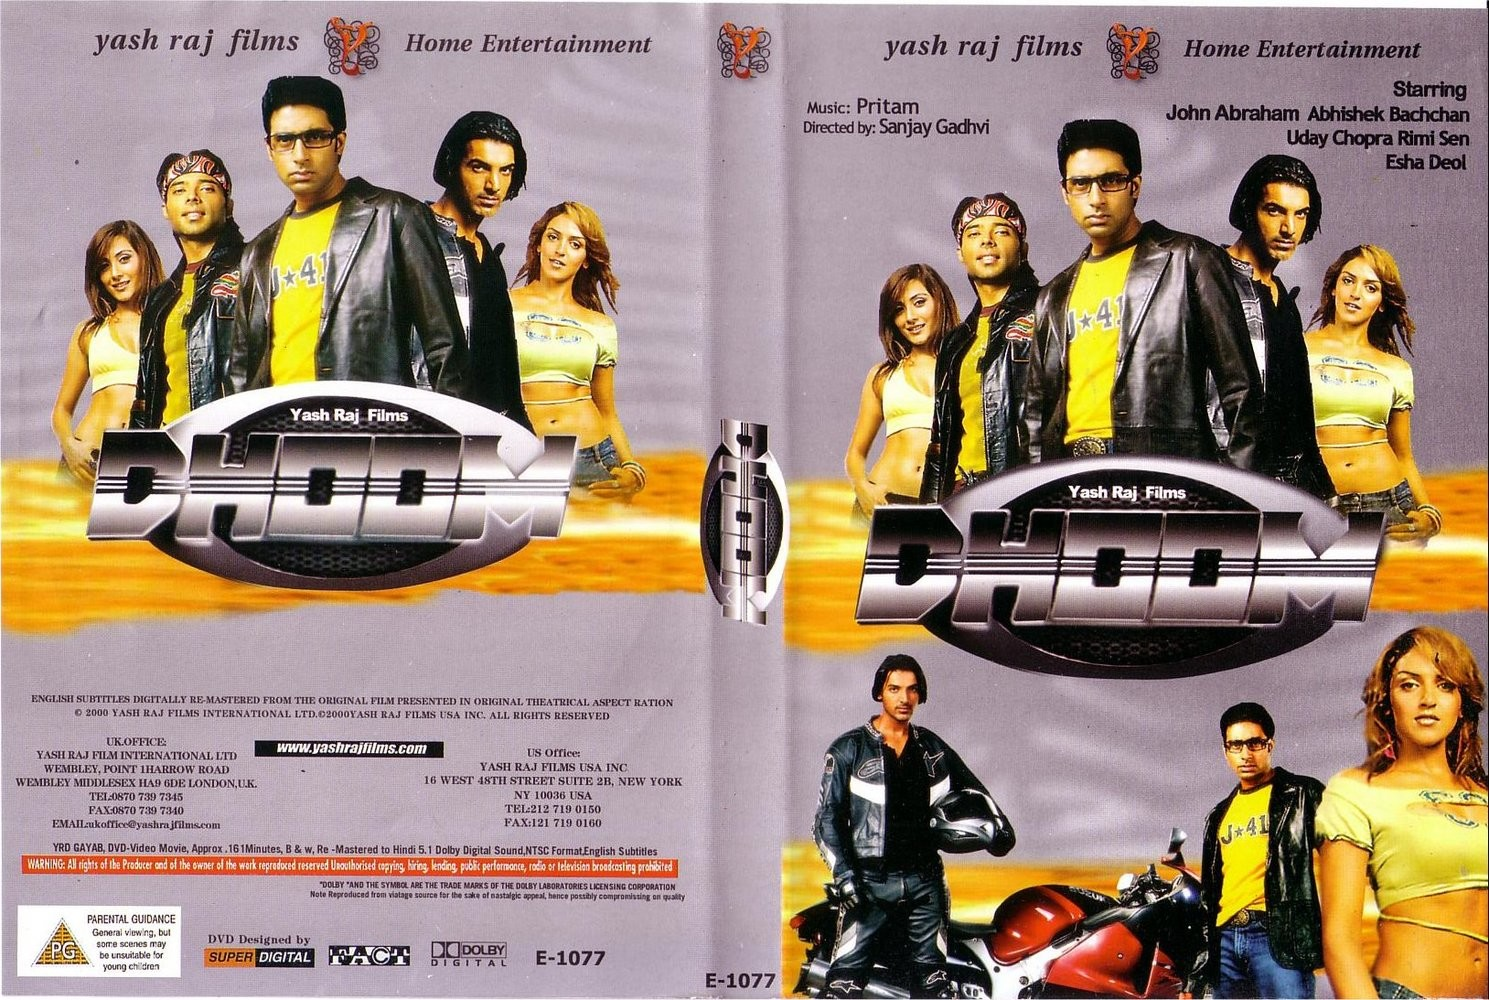 Dhoom 2 full movie hd 1080p blu-ray download freeinstmanks by.